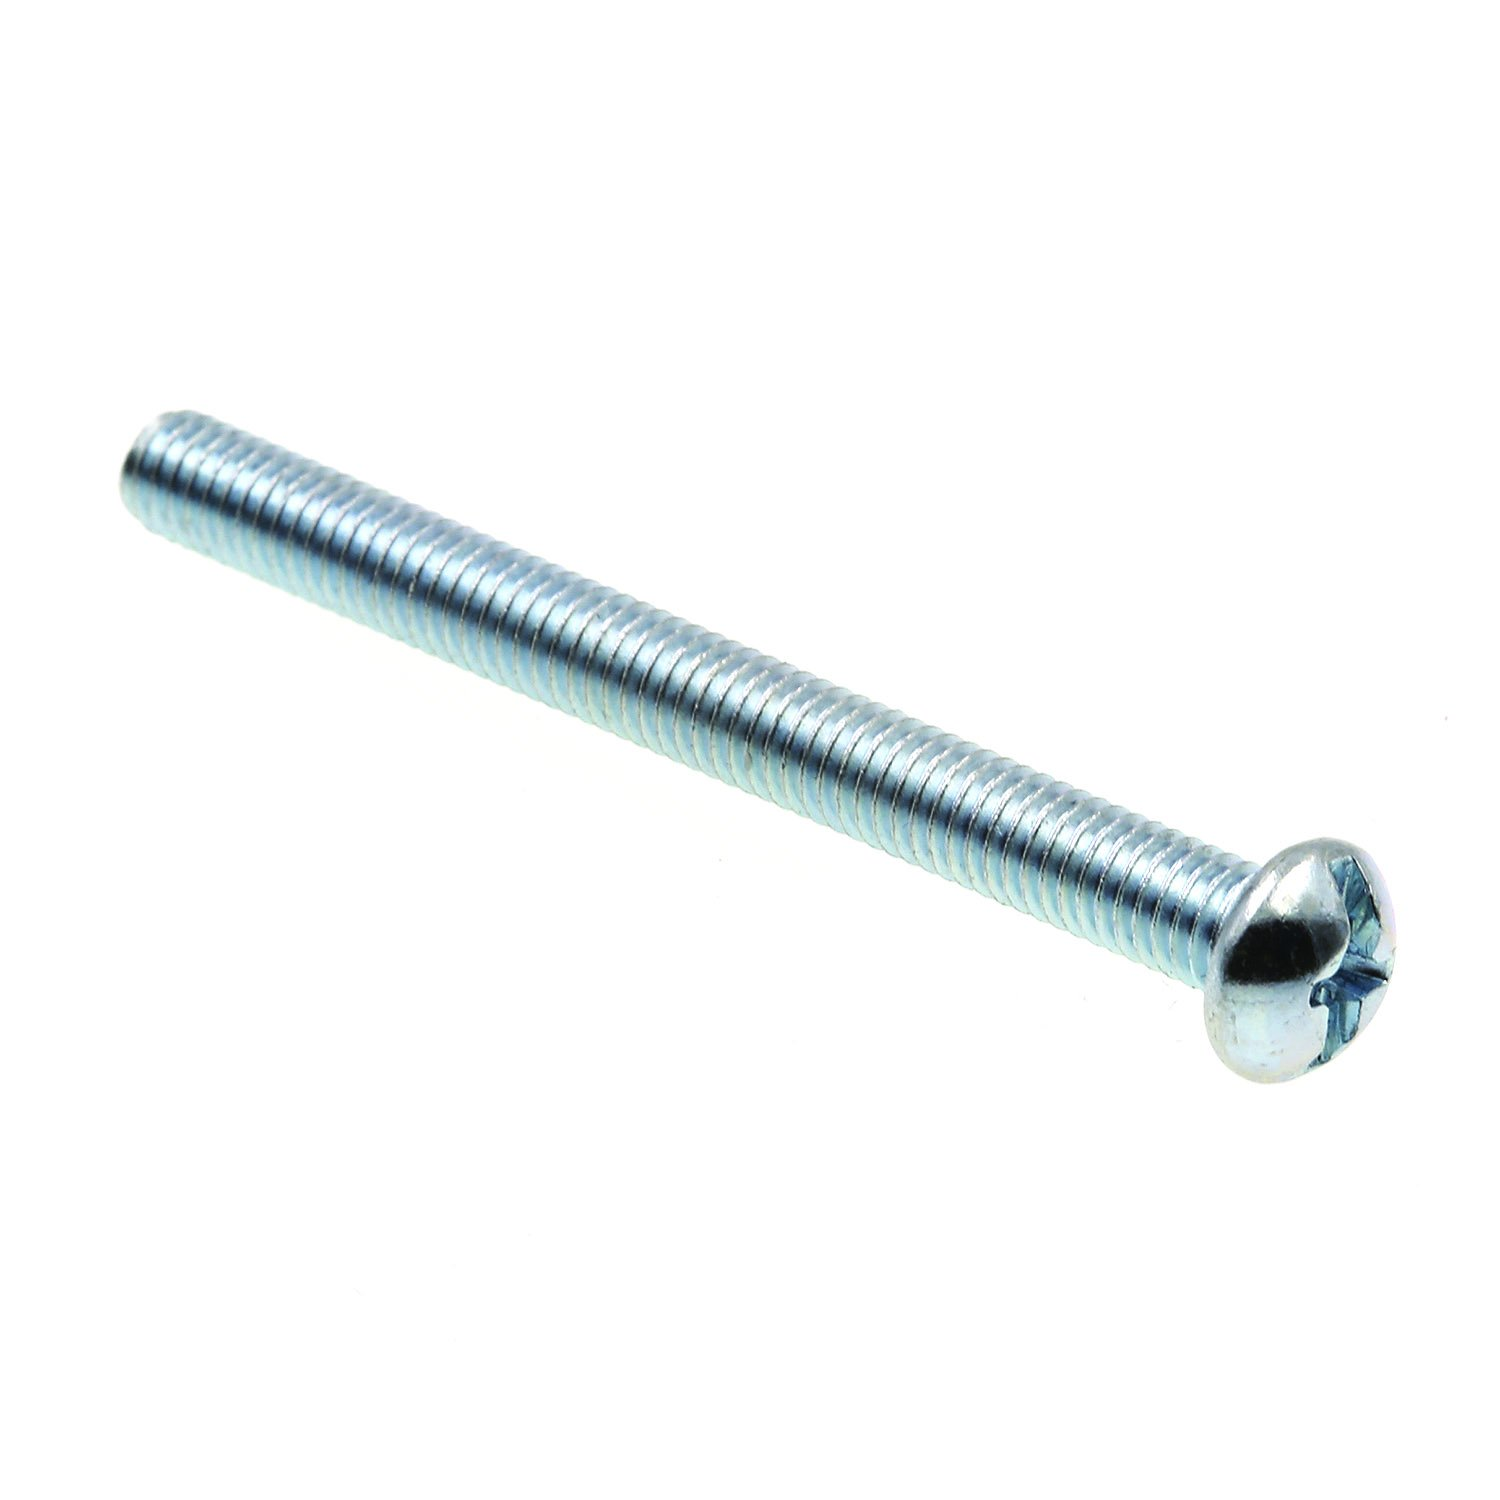 Round Head Slotted//Phillips Combo Prime-Line 9004424 Machine Screw Zinc Plated Steel 10-32 X 2 in Pack of 75